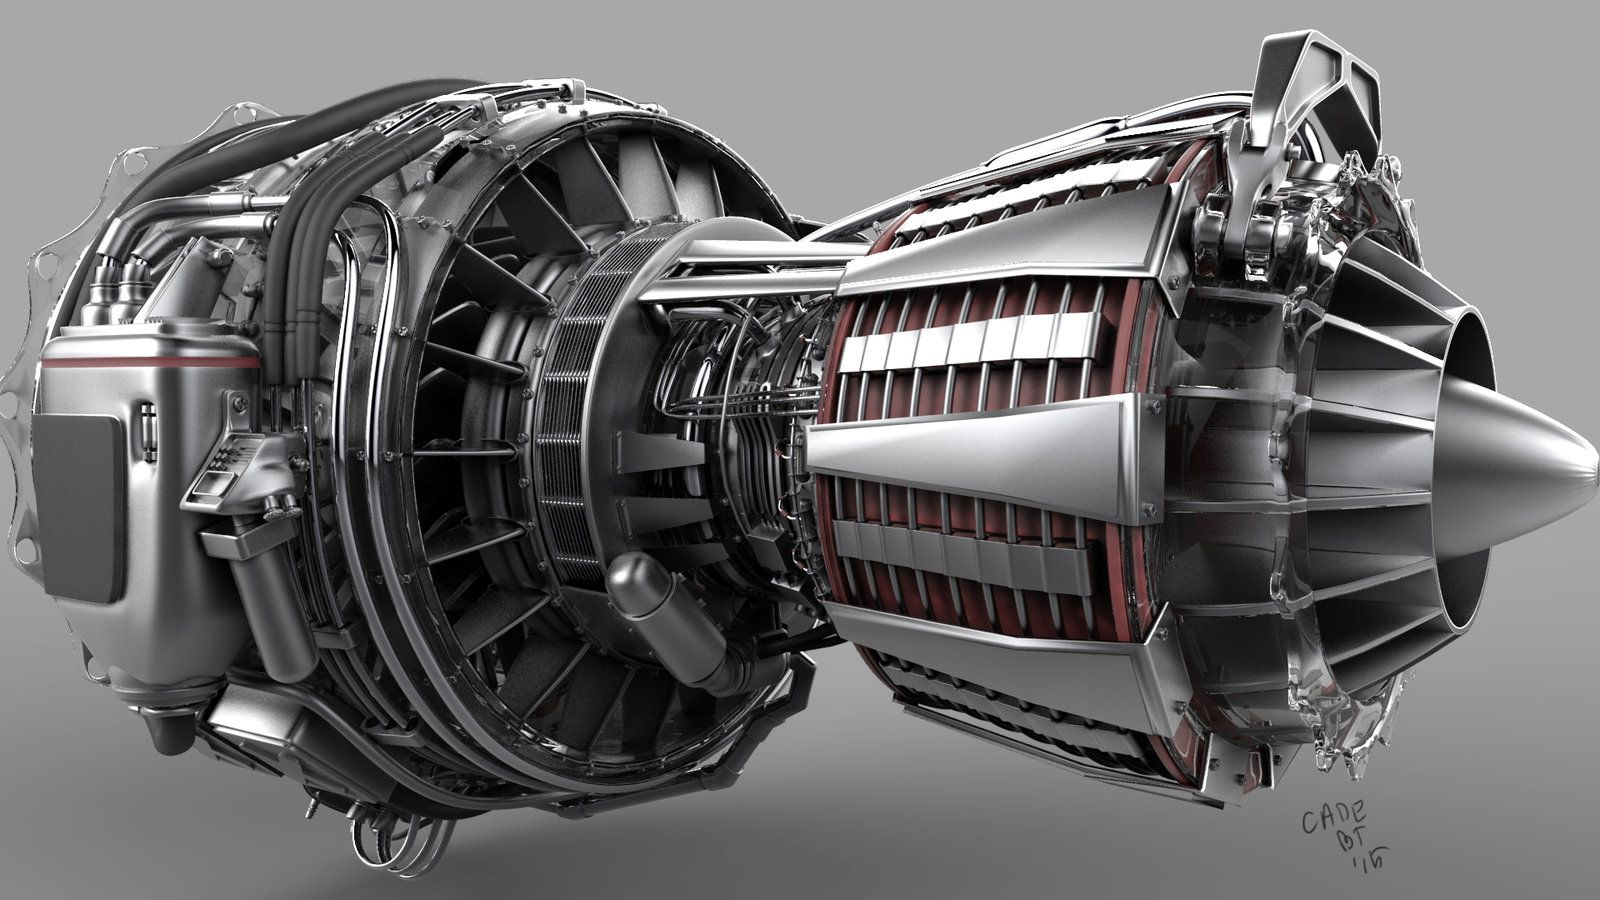 Turbo Fan Jet Engine Cade Jacobs Jet Engine Engineering Aircraft Design